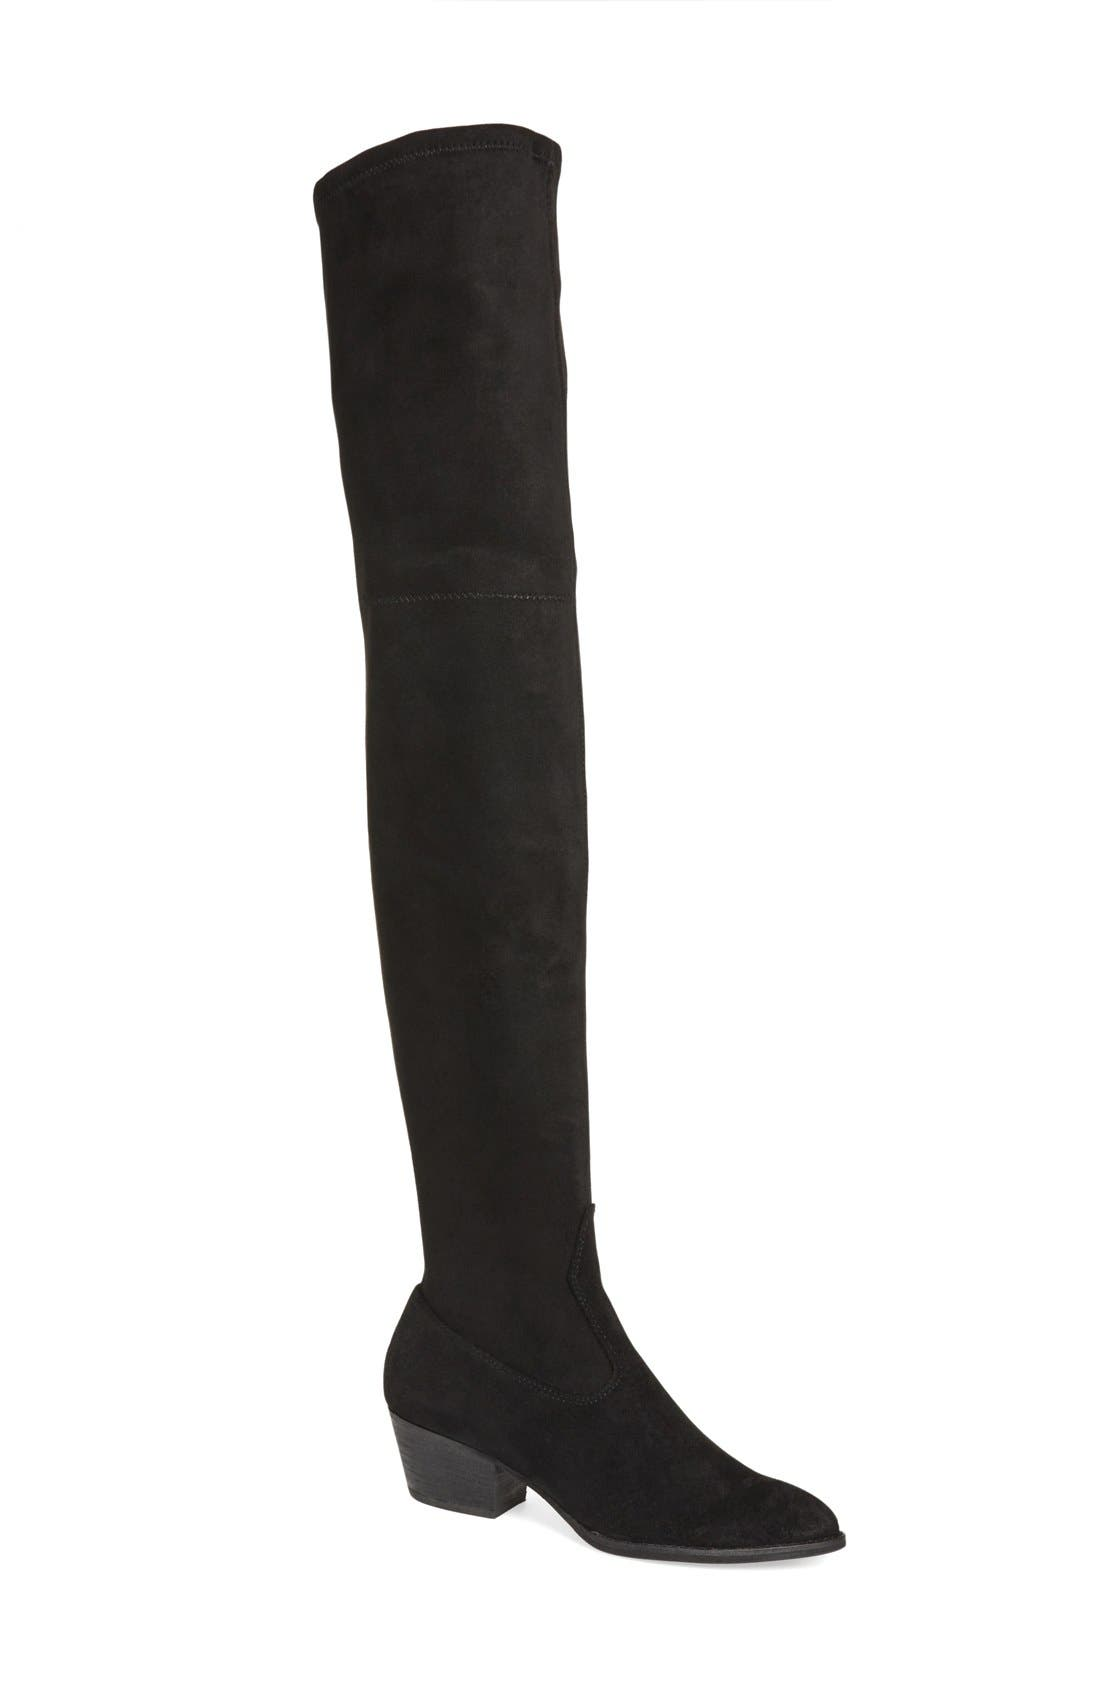 Alternate Image 1 Selected - Dolce Vita 'Sparrow' Thigh High Almond Toe Boot (Women)